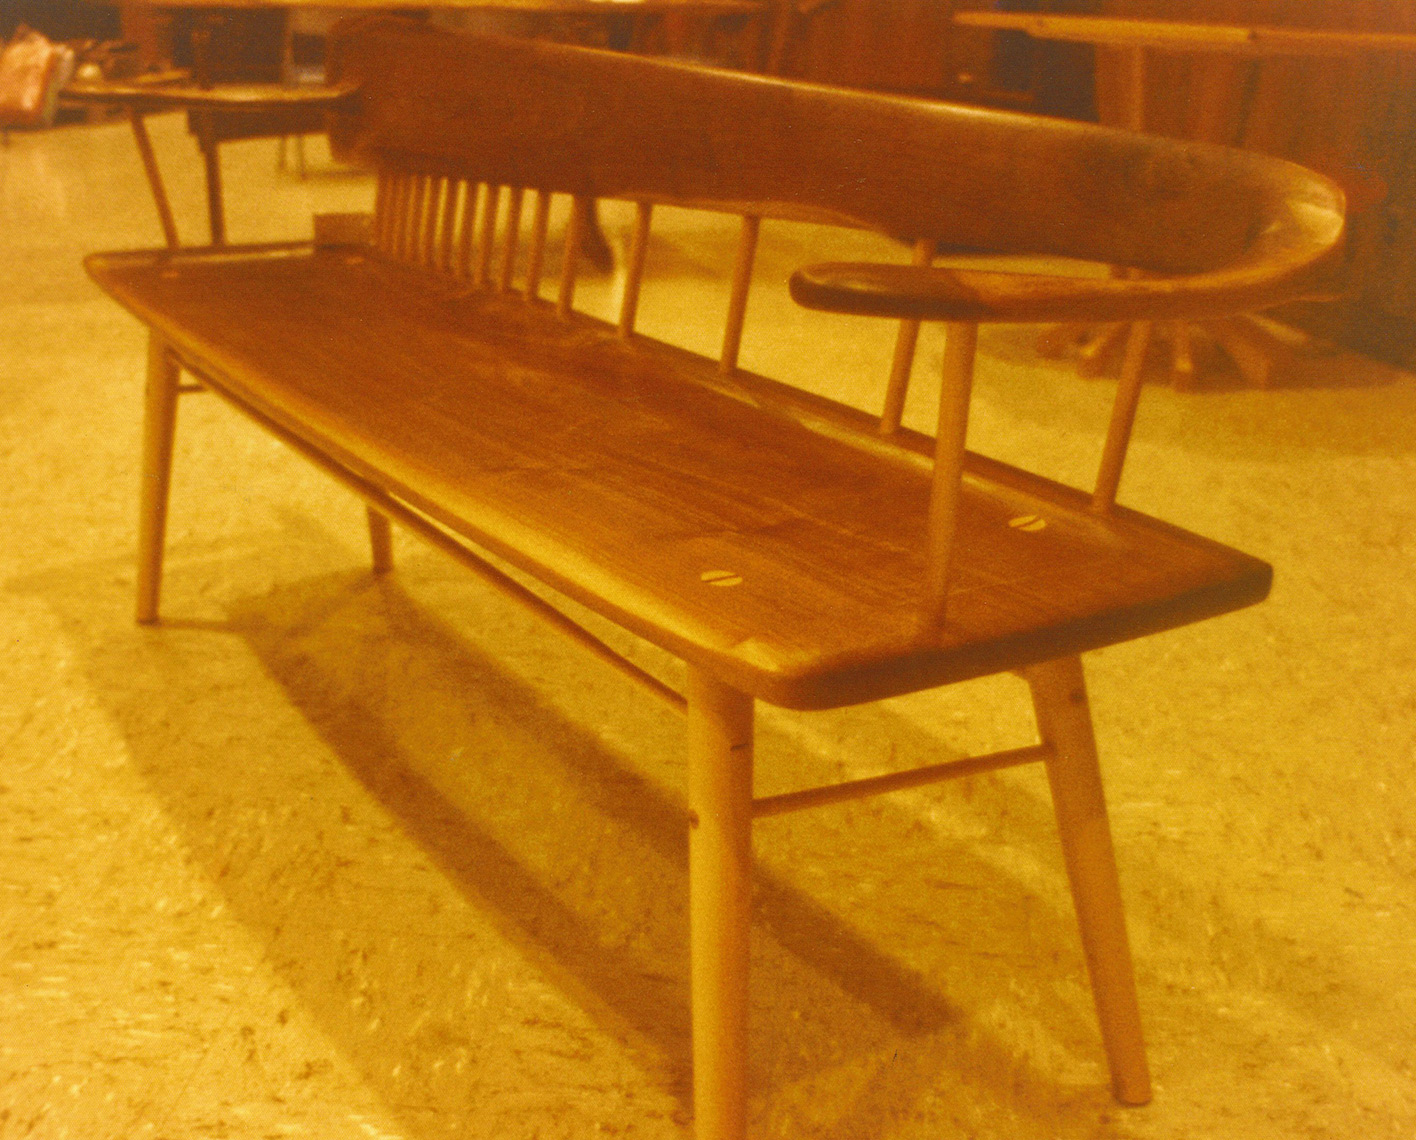 Figured Walnut-Flitch Seat wood Bench Custom Furniture 3